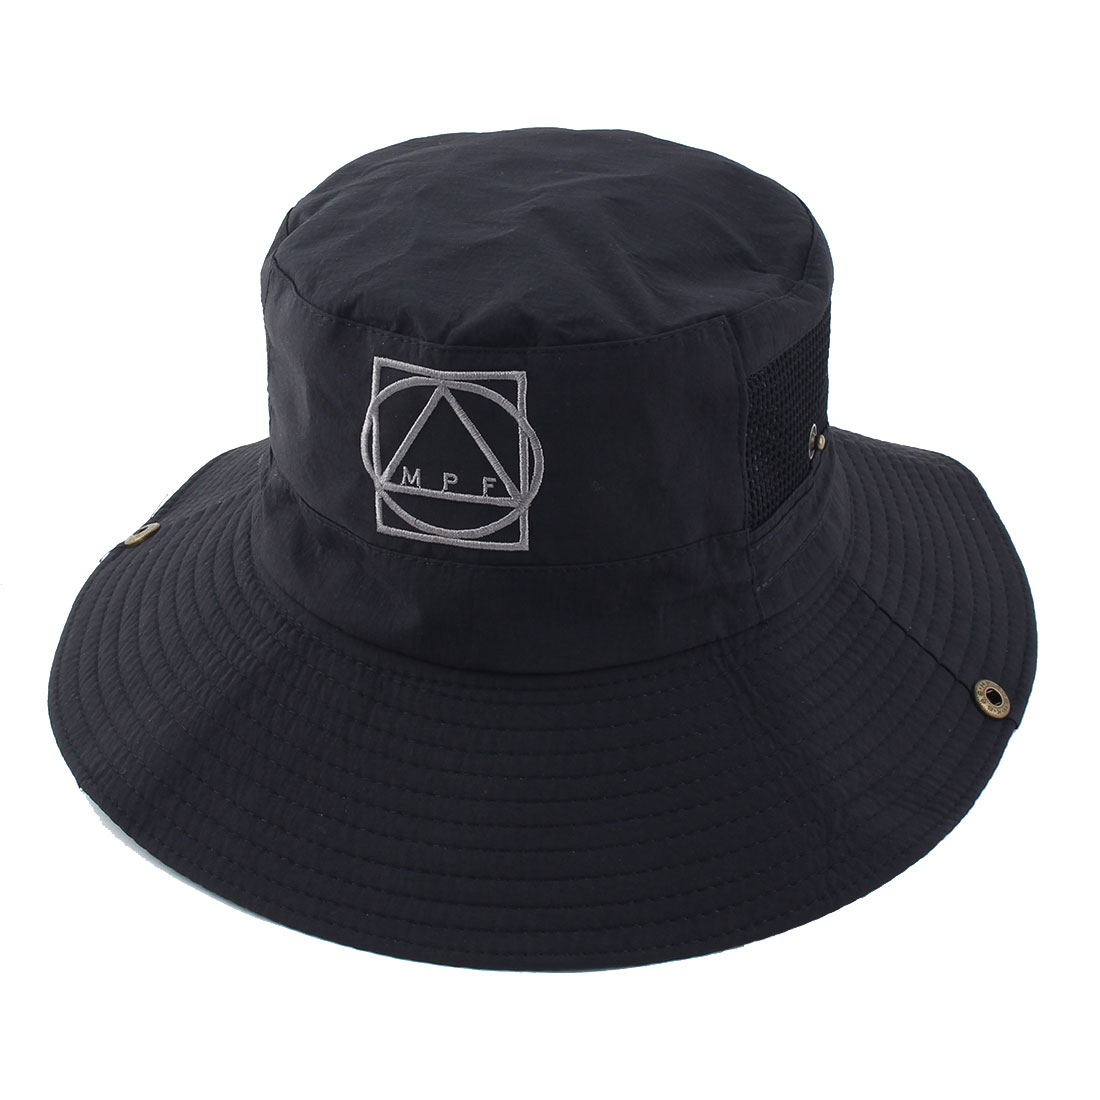 Fisherman Outdoor Hunting Fishing Bucket Polyester Geometric Pattern Mesh Brim Summer Sun Protective Cap Hat Black